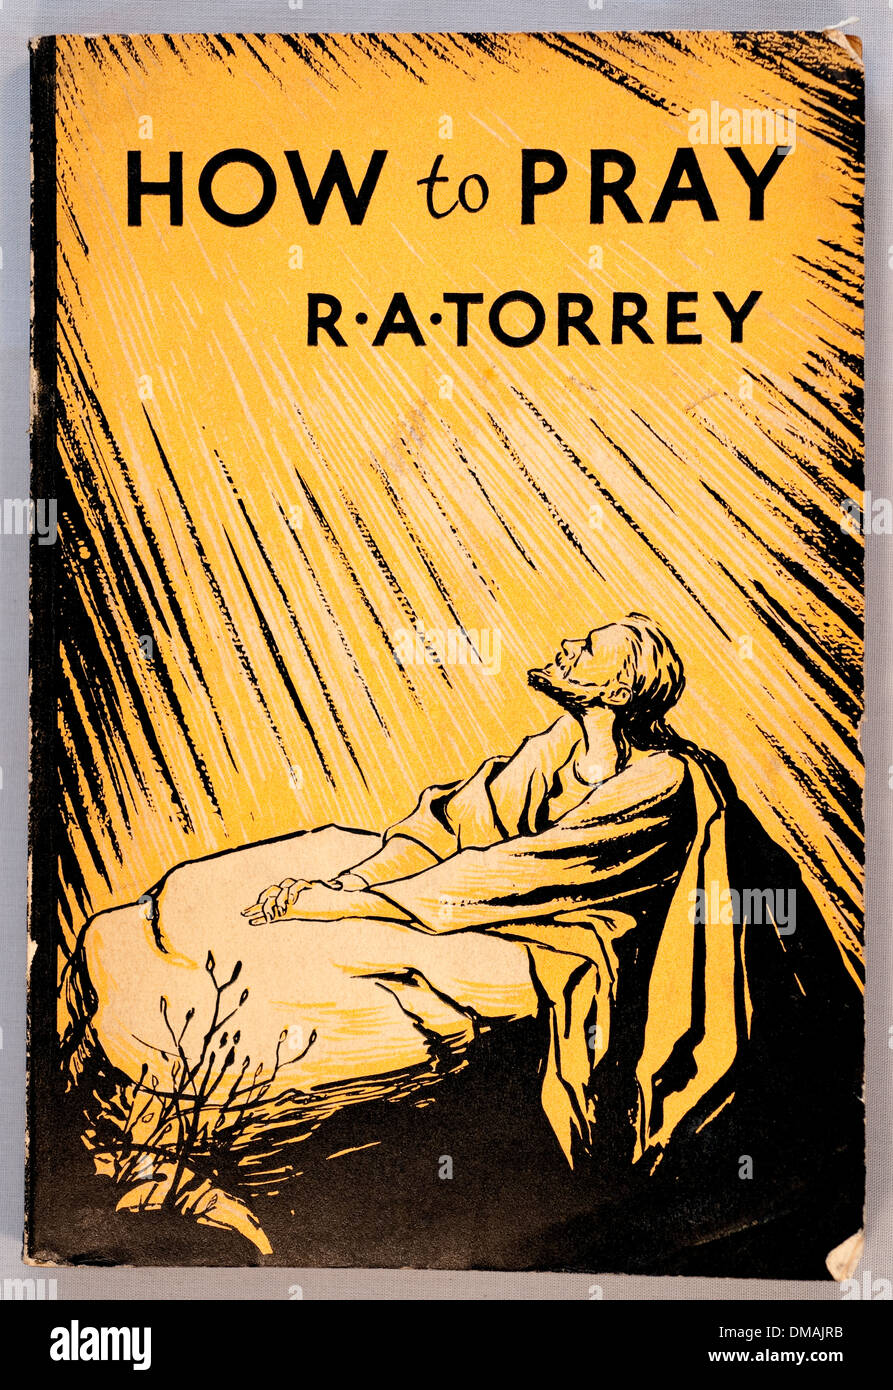 How To Pray Christian Book Illustration R A Torrey Historical Archival Document - Stock Image